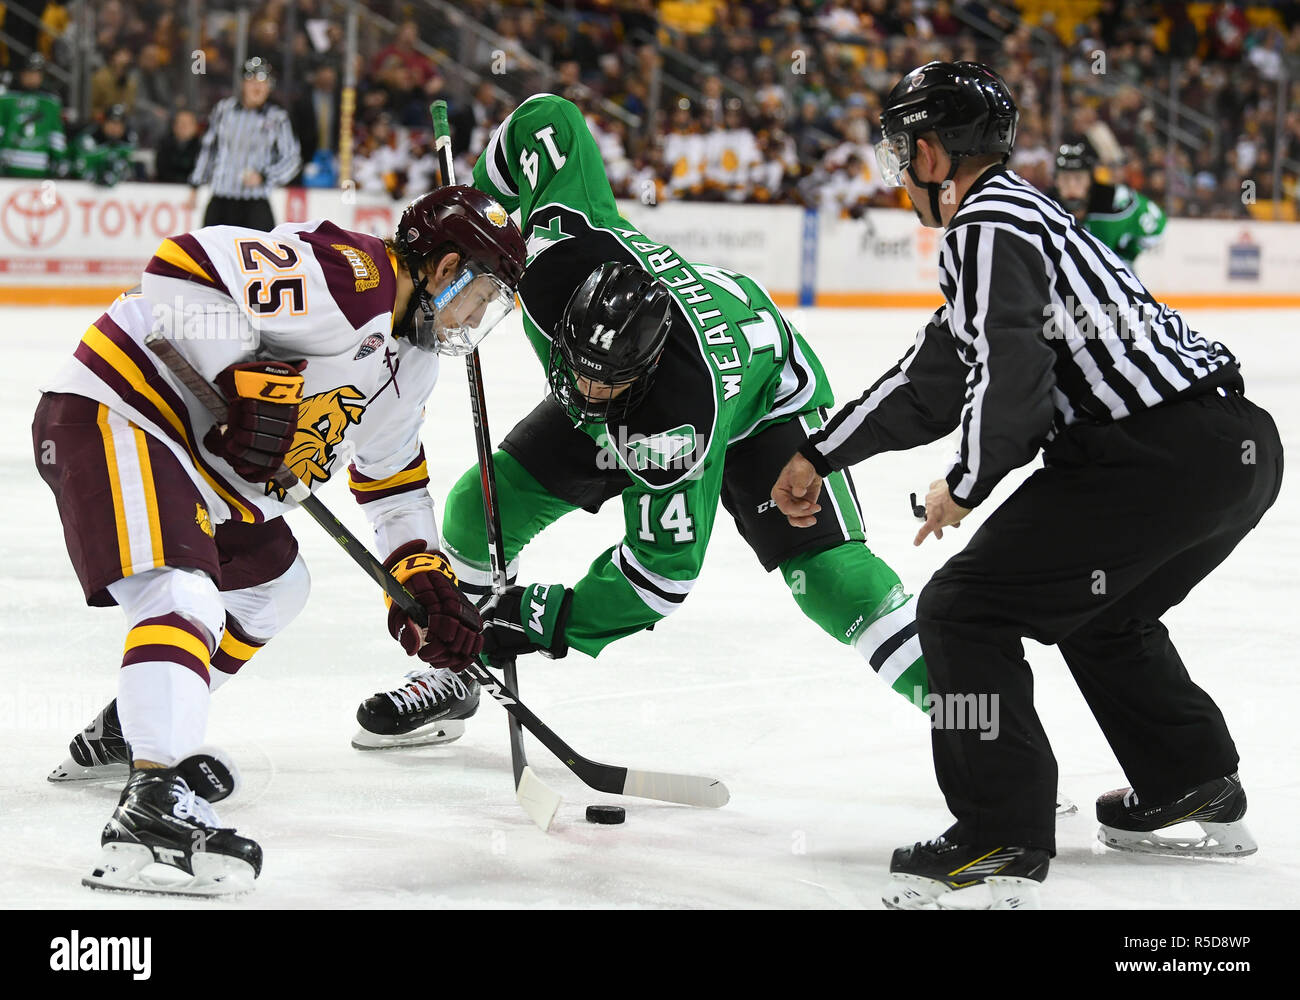 November 30, 2018 Minnesota-Duluth Bulldogs forward Peter Krieger (25) and North Dakota Fighting Hawks forward Jasper Weatherby (14) faceoff during a NCAA men's ice hockey game between the University of North Dakota Fighting Hawks and the Minnesota Duluth Bulldogs at Amsoil Arena in Duluth, MN. Minnesota Duluth won 5-0. Photo by Russell Hons/CSM Credit: Cal Sport Media/Alamy Live News - Stock Image